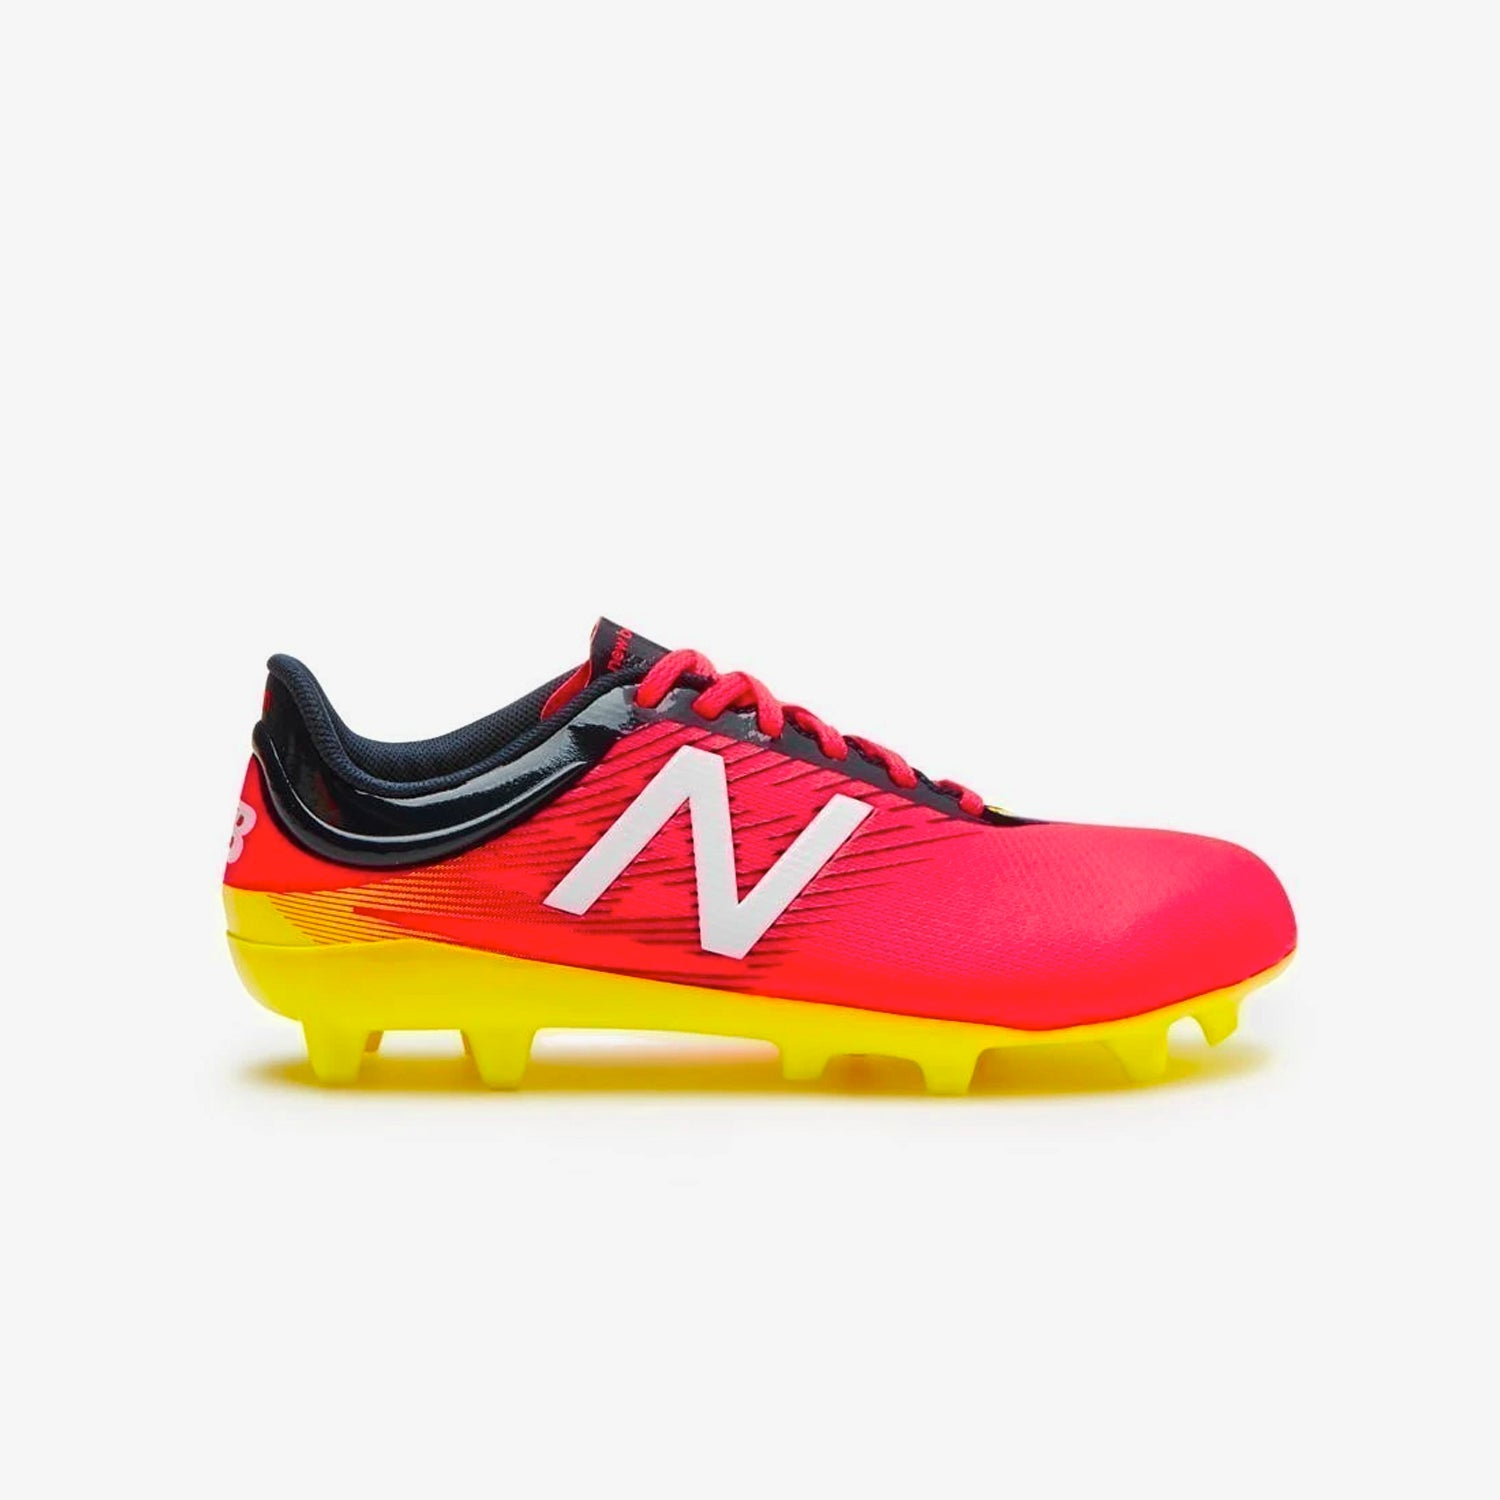 Kid's Furon 2.0 Dispatch Firm-Ground Soccer Cleats